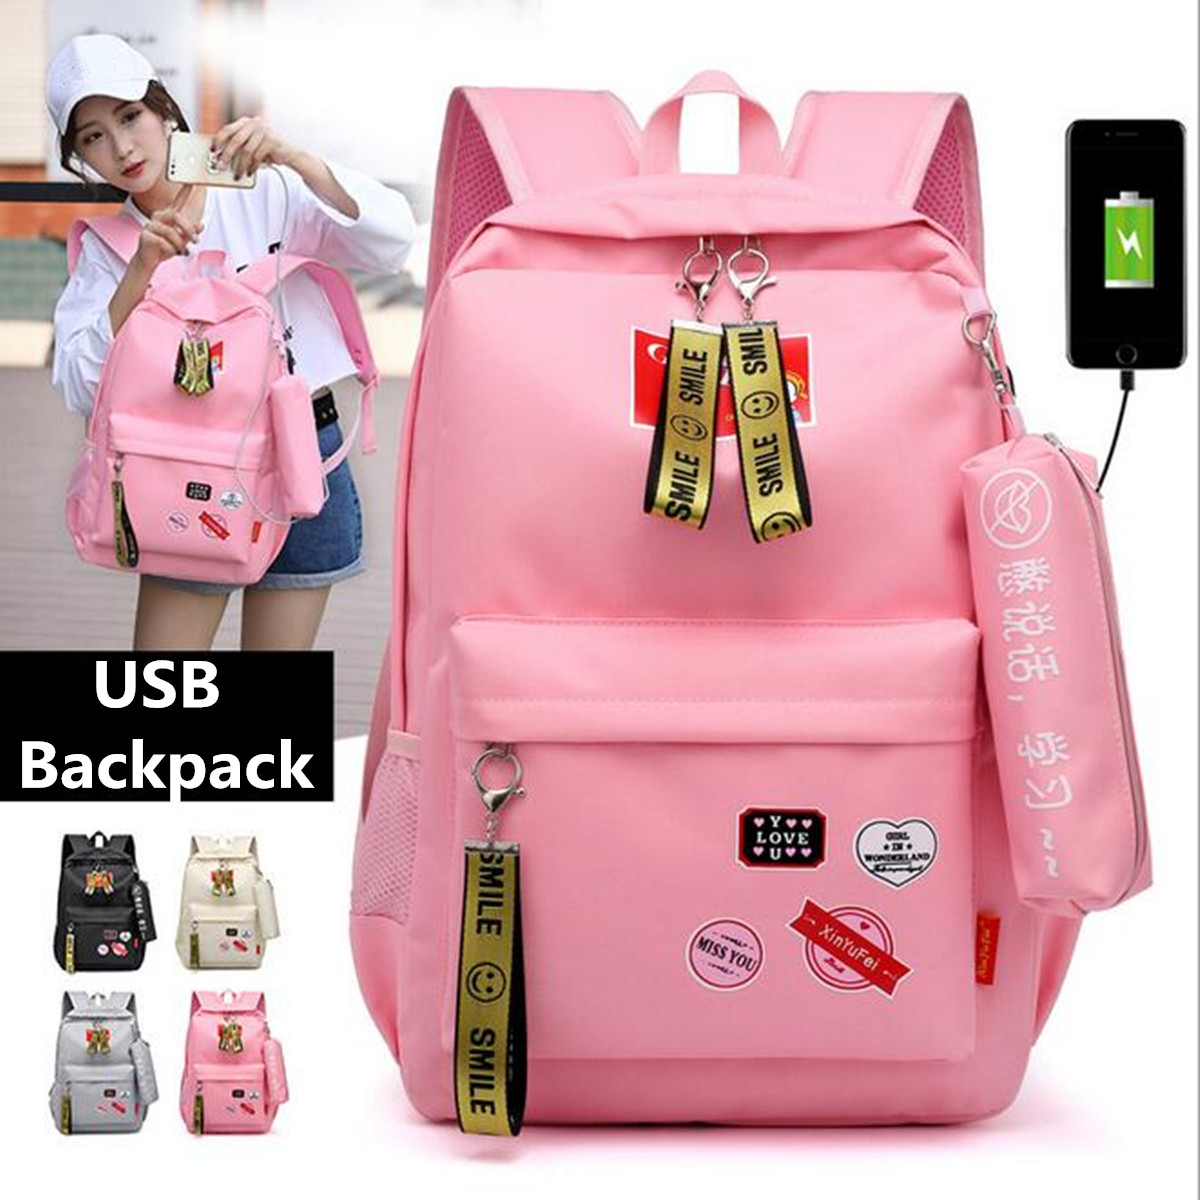 Women Backpack USB Charging Oxford Cloth Backpacks School Bags For Teenagers Girl Travel Backpack School Bags With Pencil Case